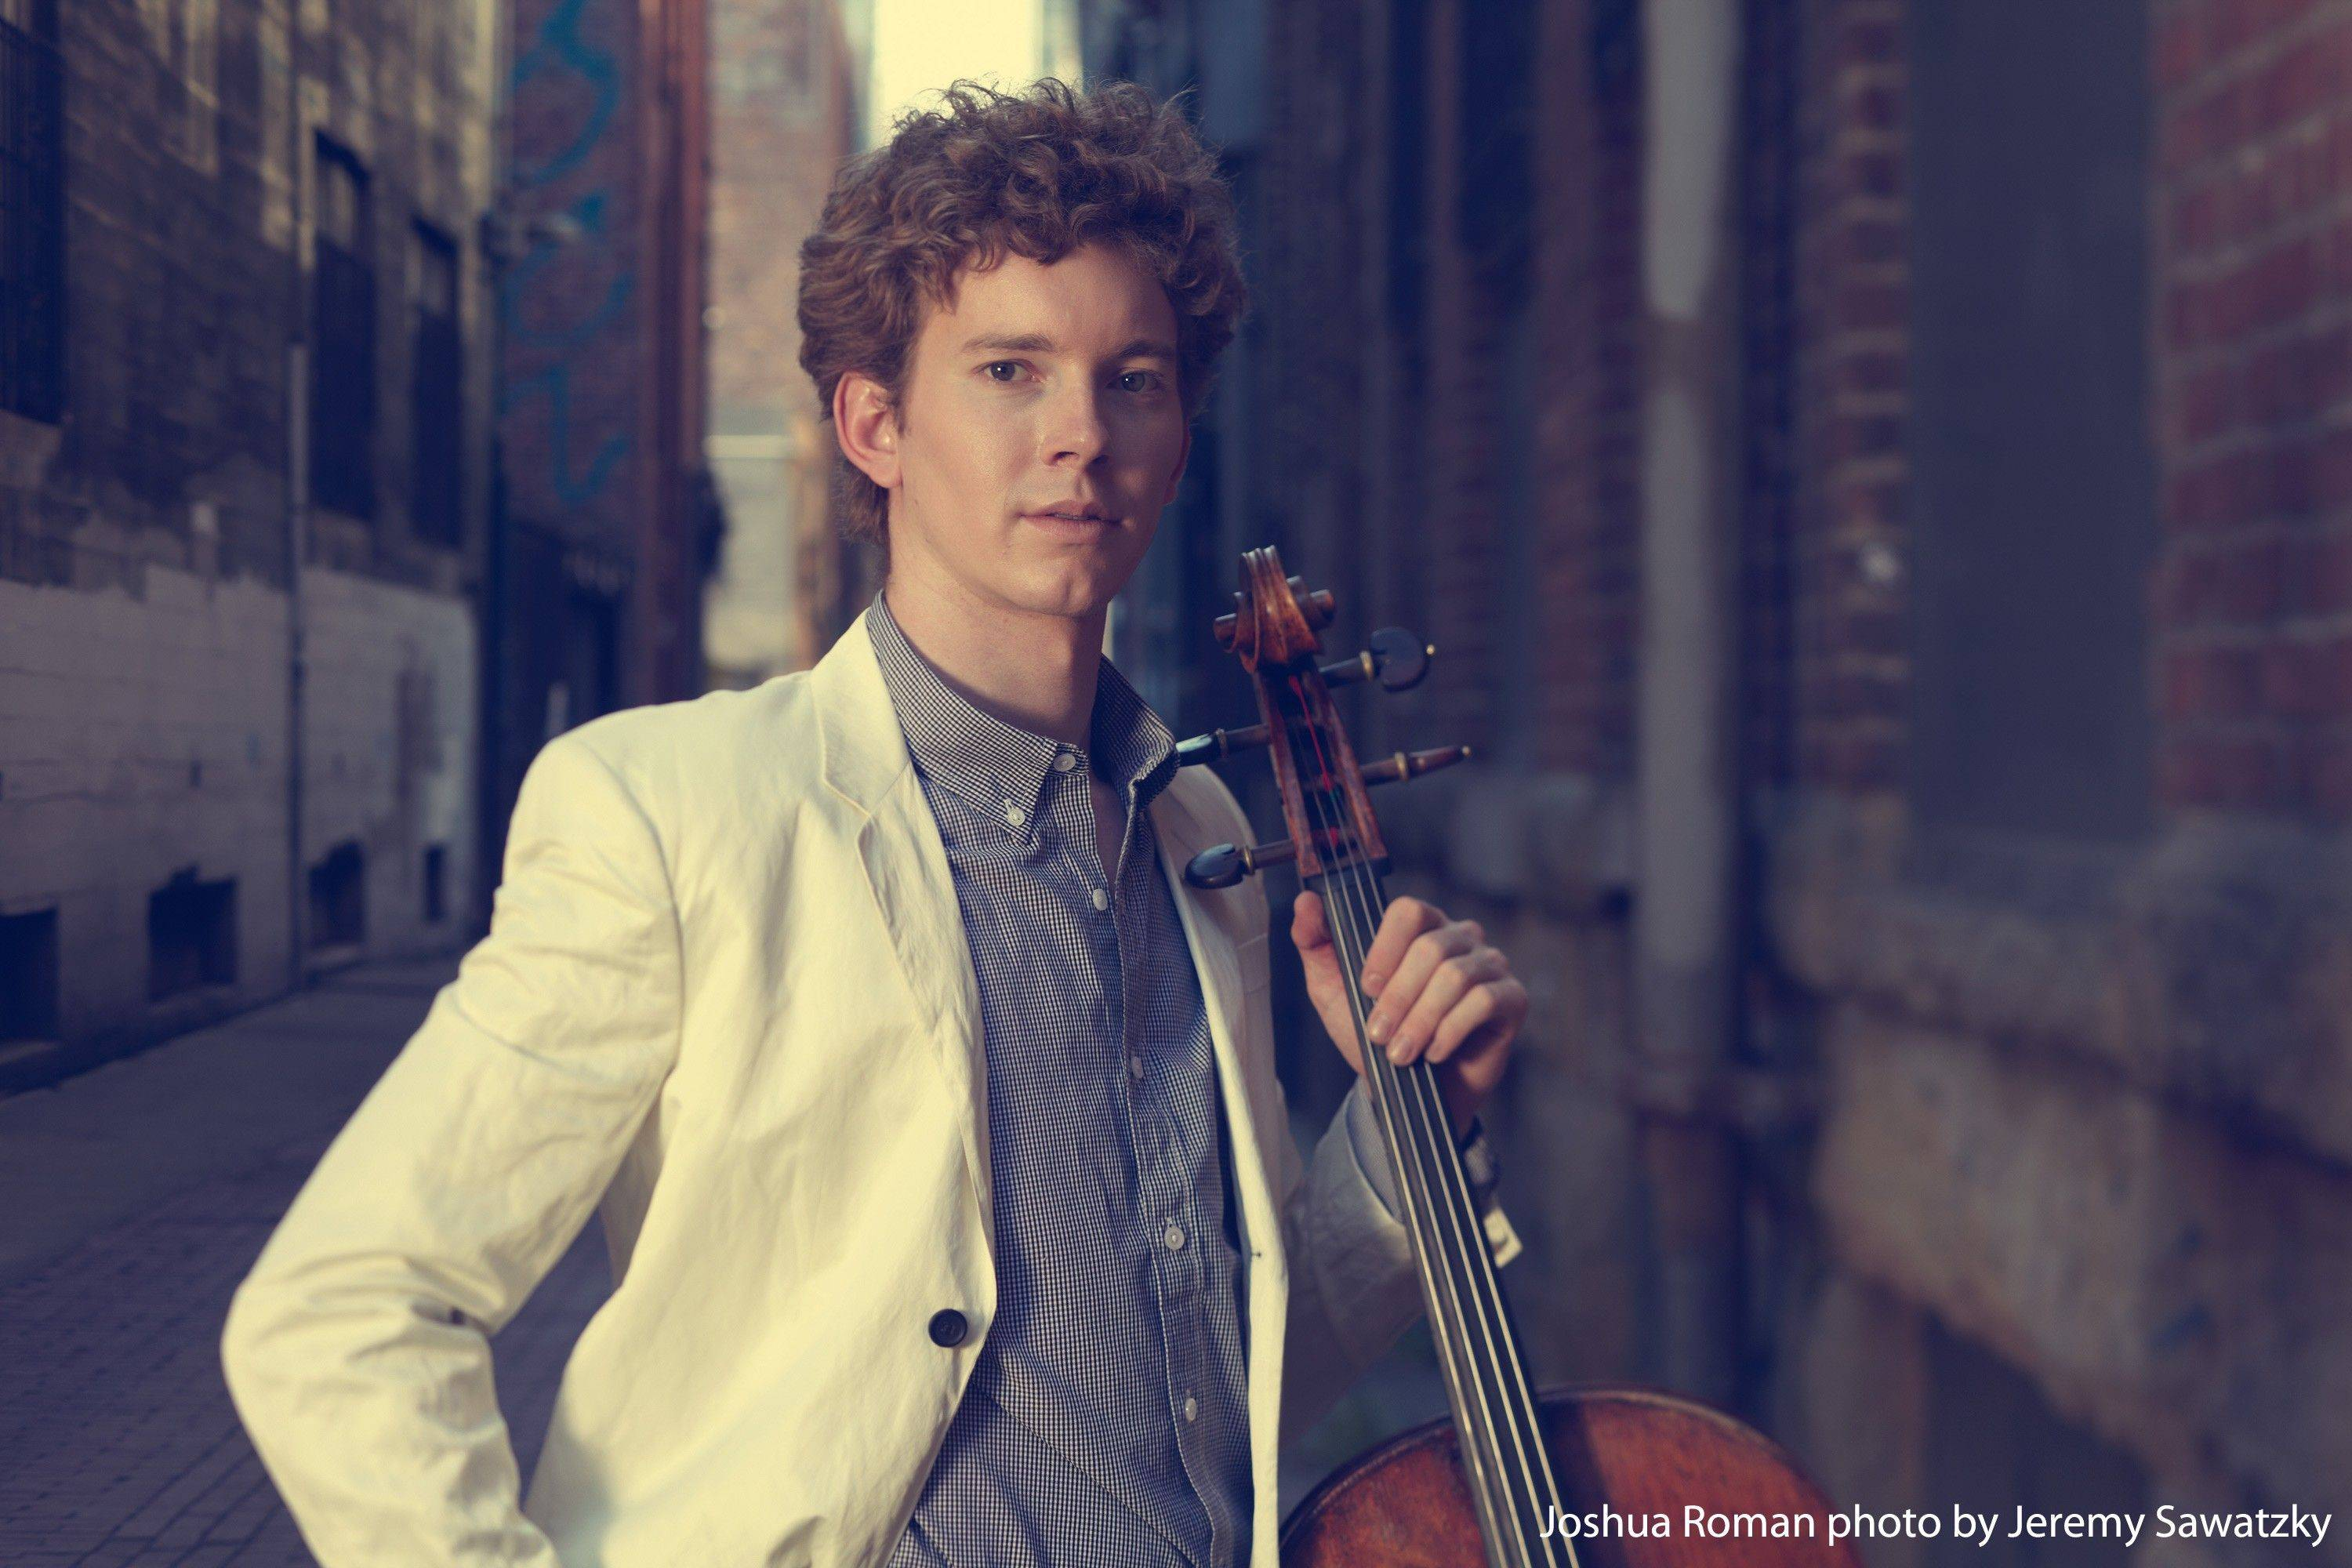 Cellist Joshua Roman performs at Wheaton College's Edman Memorial Chapel on Saturday, Oct. 22.